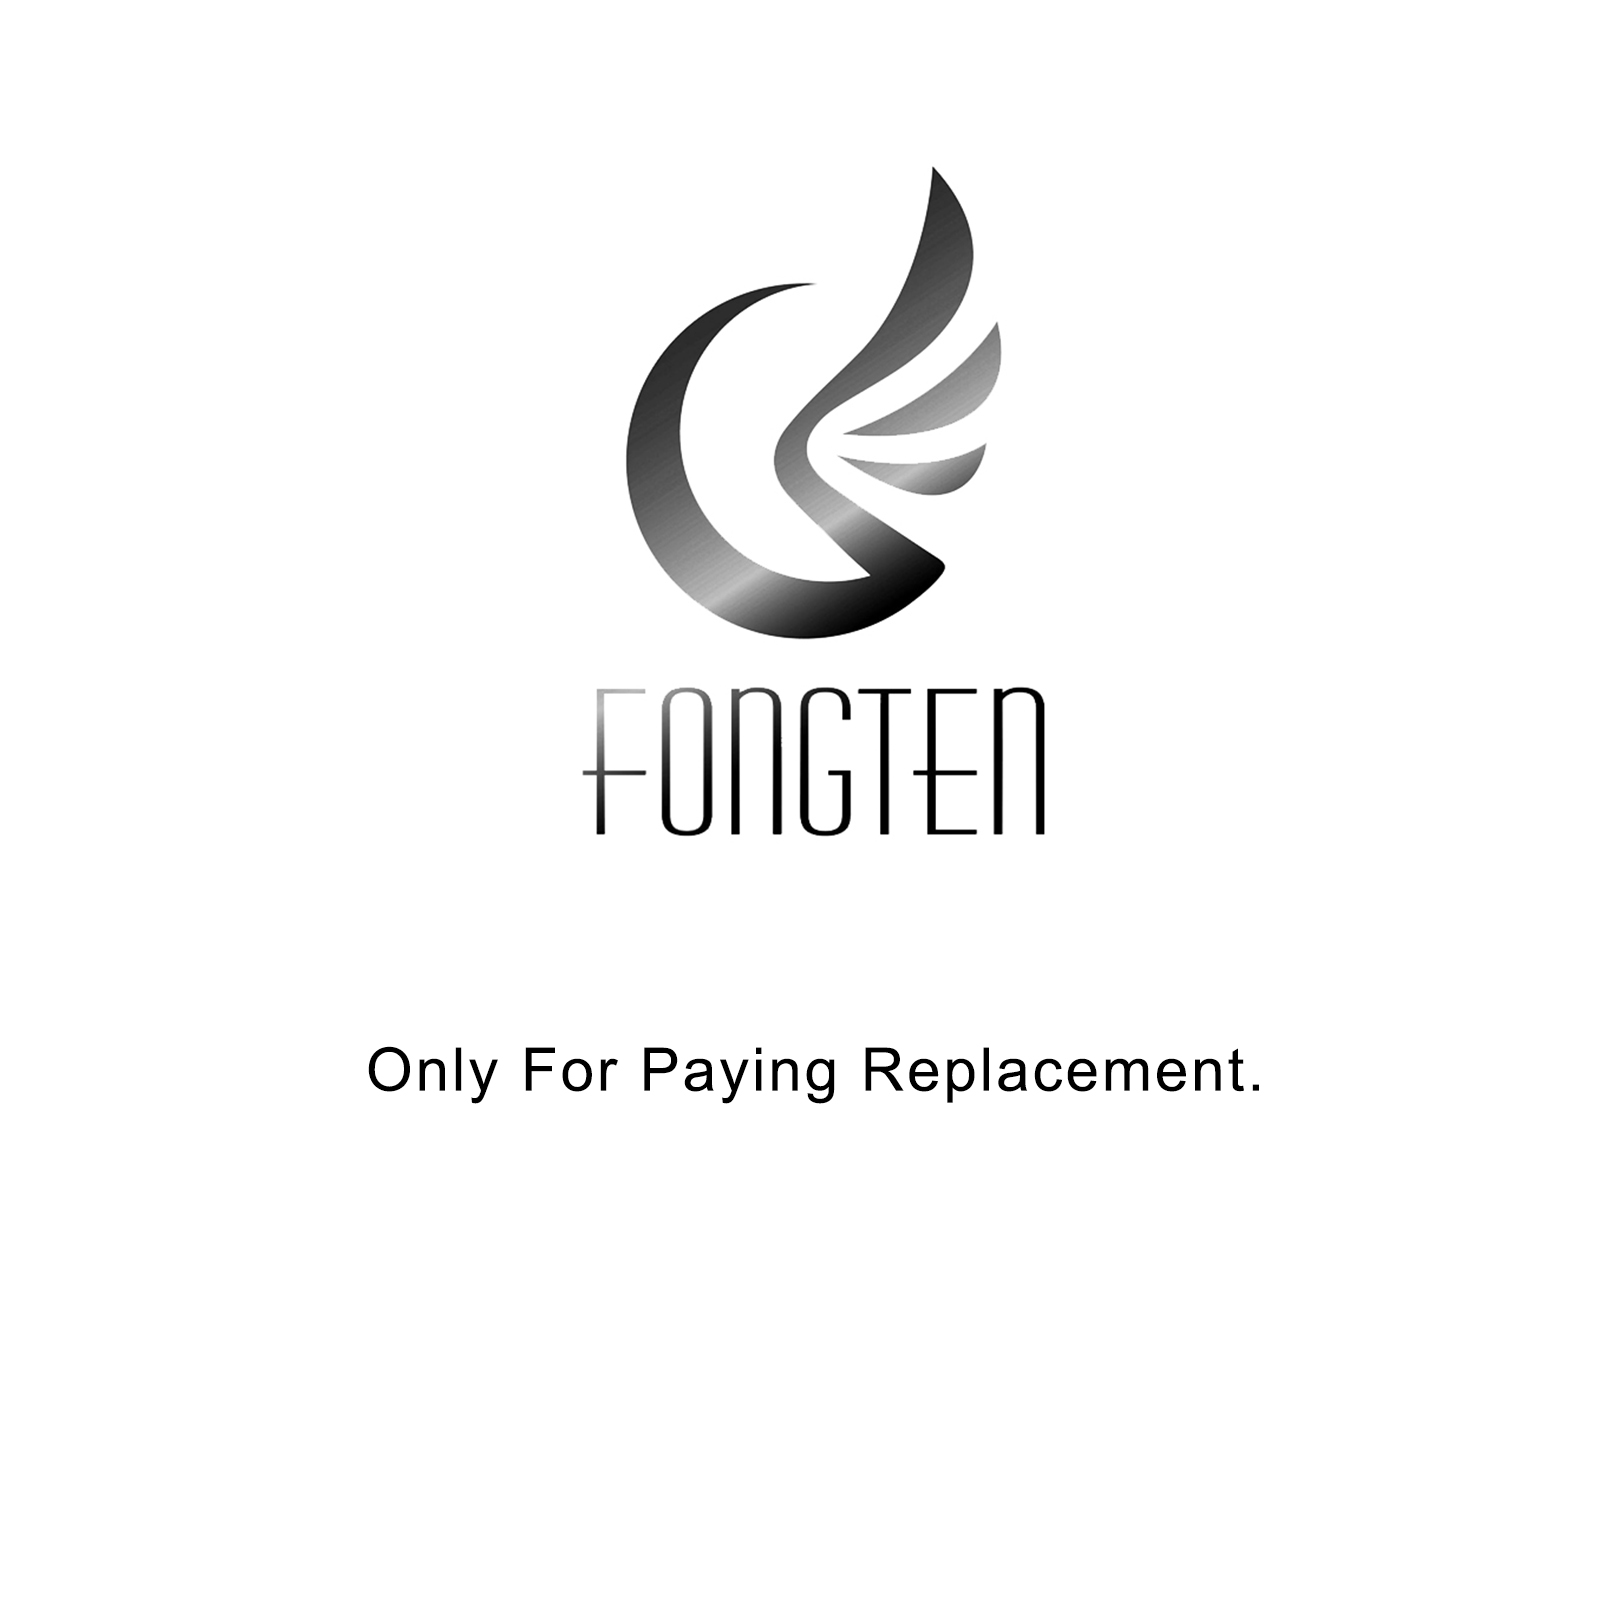 Fongten Only For Paying Replacement Order, Direct Order Will Not Include Any Product